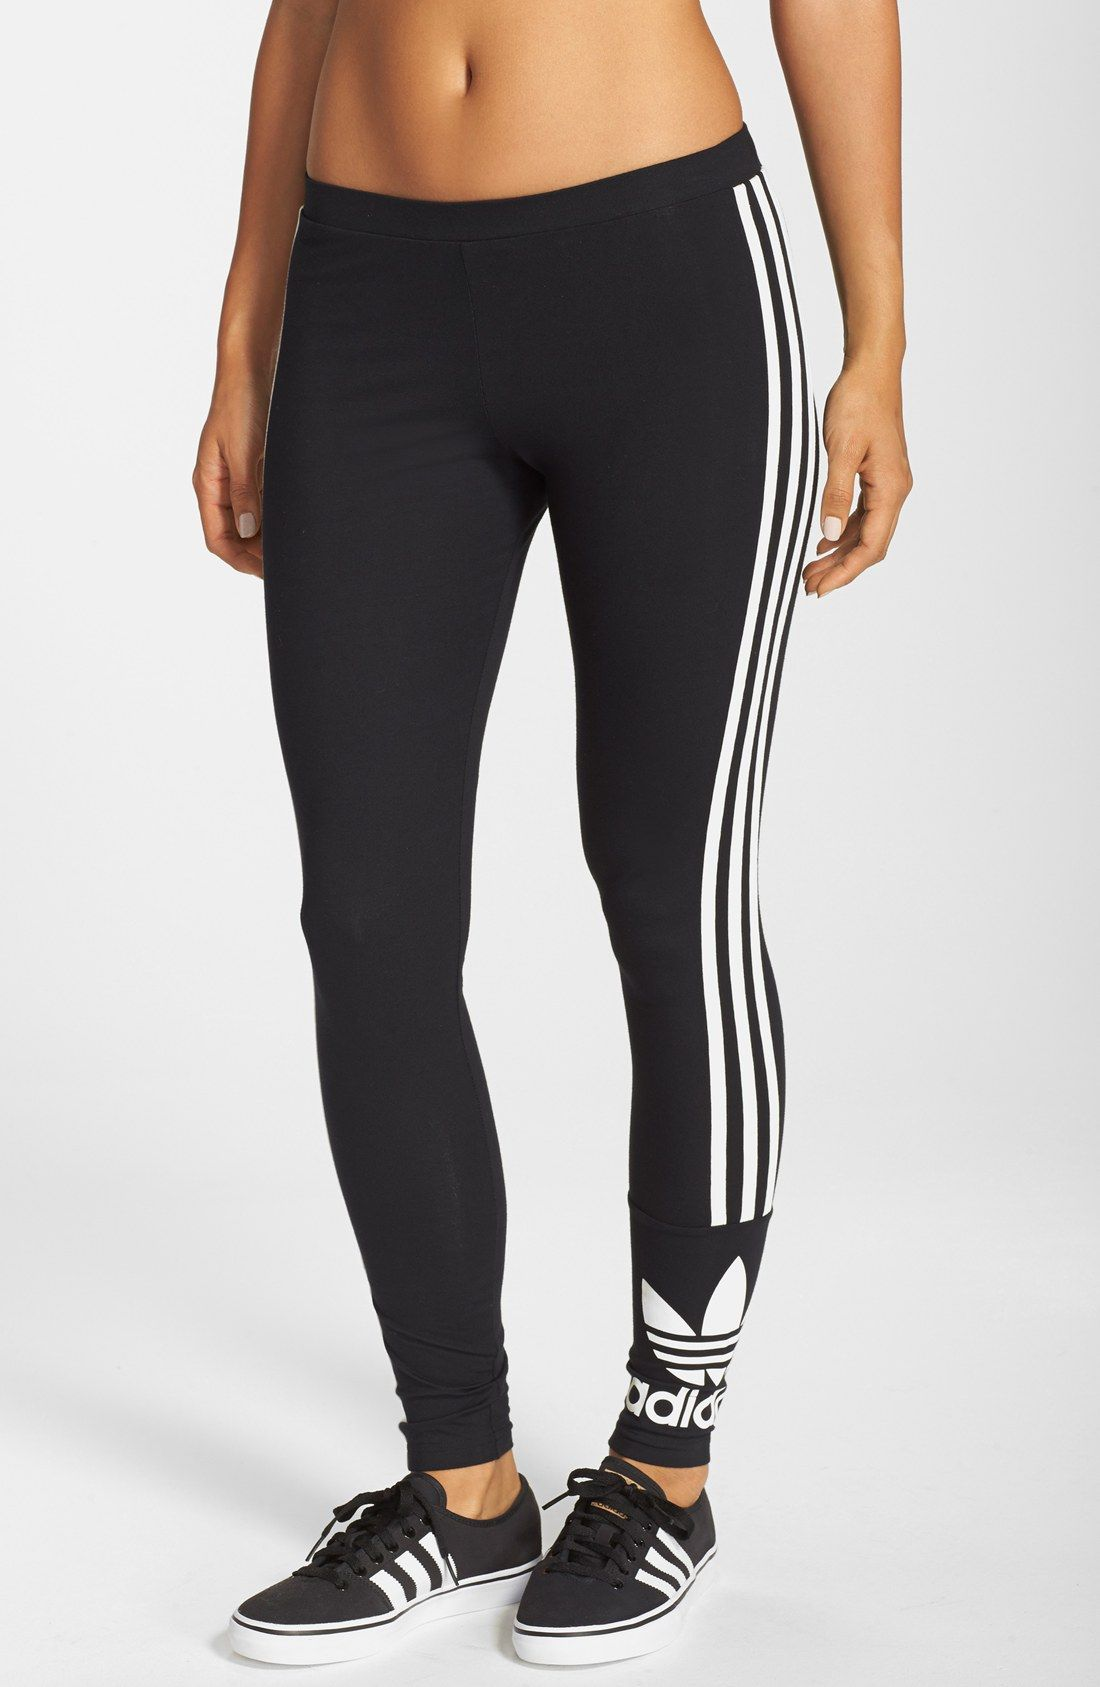 Details about Adidas Leggings Women's Stretch Trousers Sports Pants Trackies Leggings